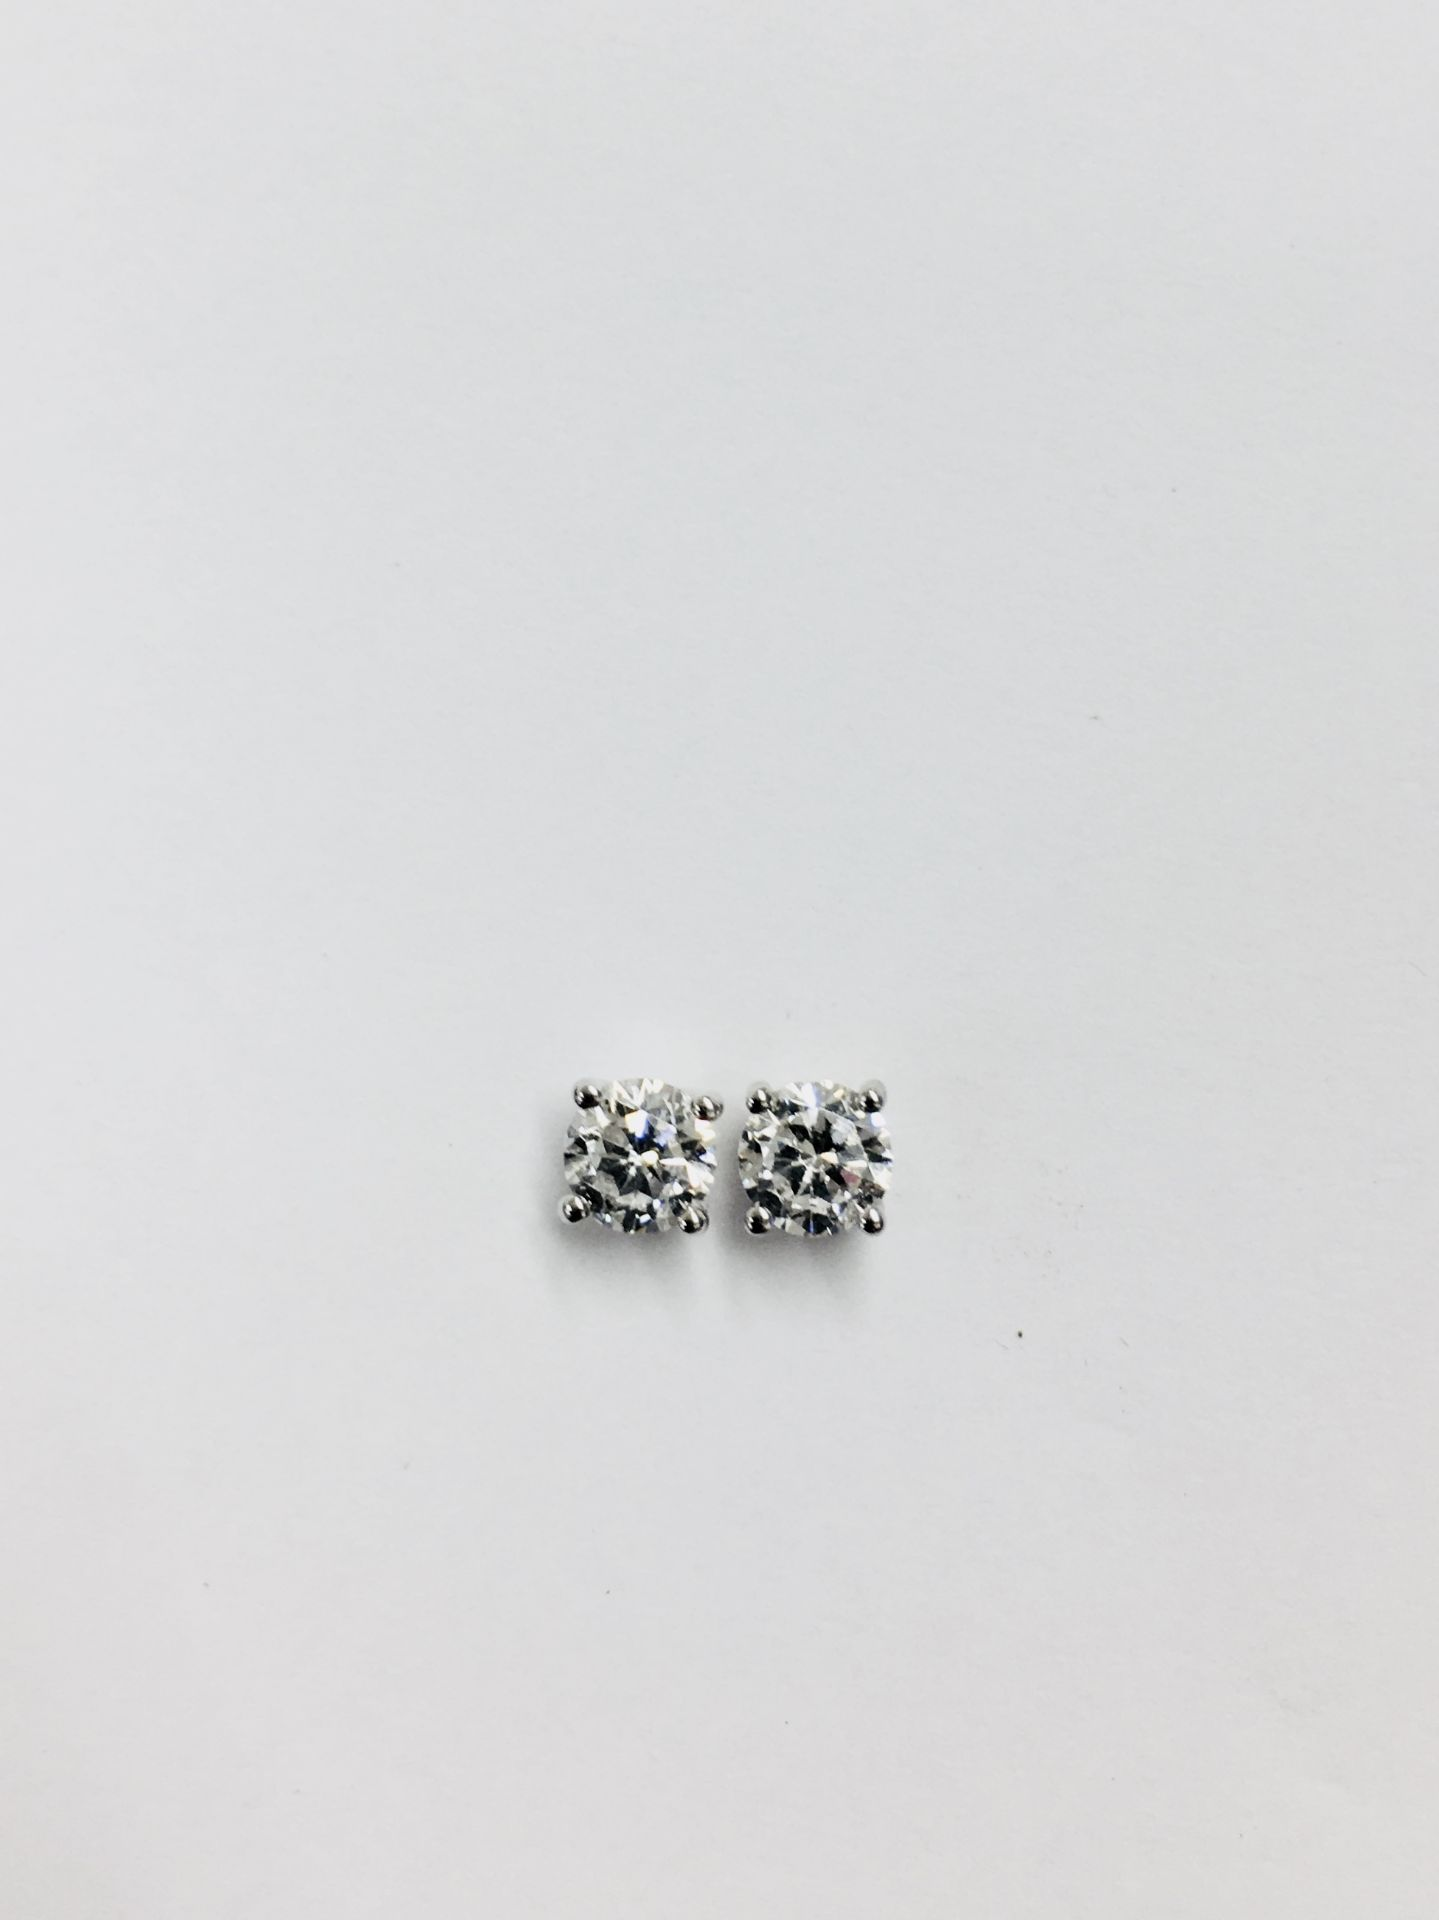 Lot 6 - 0.50ct Solitaire diamond stud earrings set with brilliant cut diamonds, i1 clarity and I colour. Set